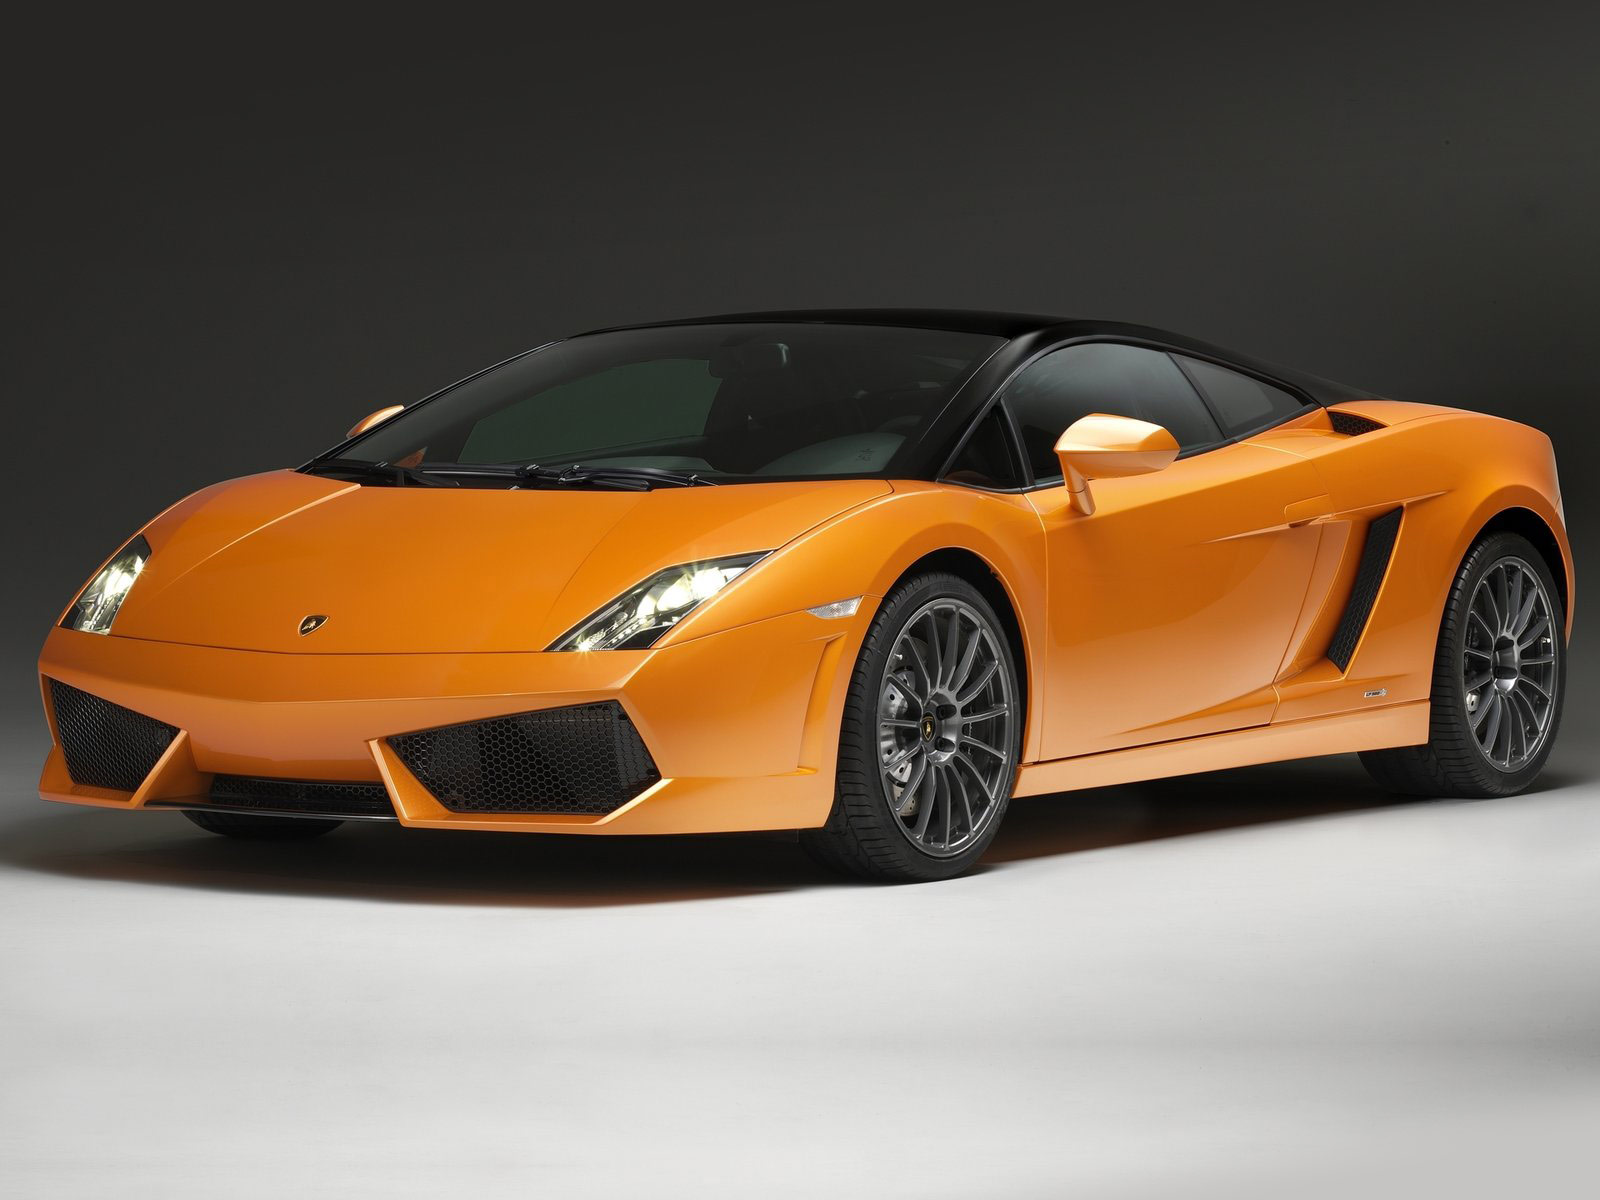 lamborghini gallardo lp560 4 bicolore accident lawyers info lamborghini. Black Bedroom Furniture Sets. Home Design Ideas